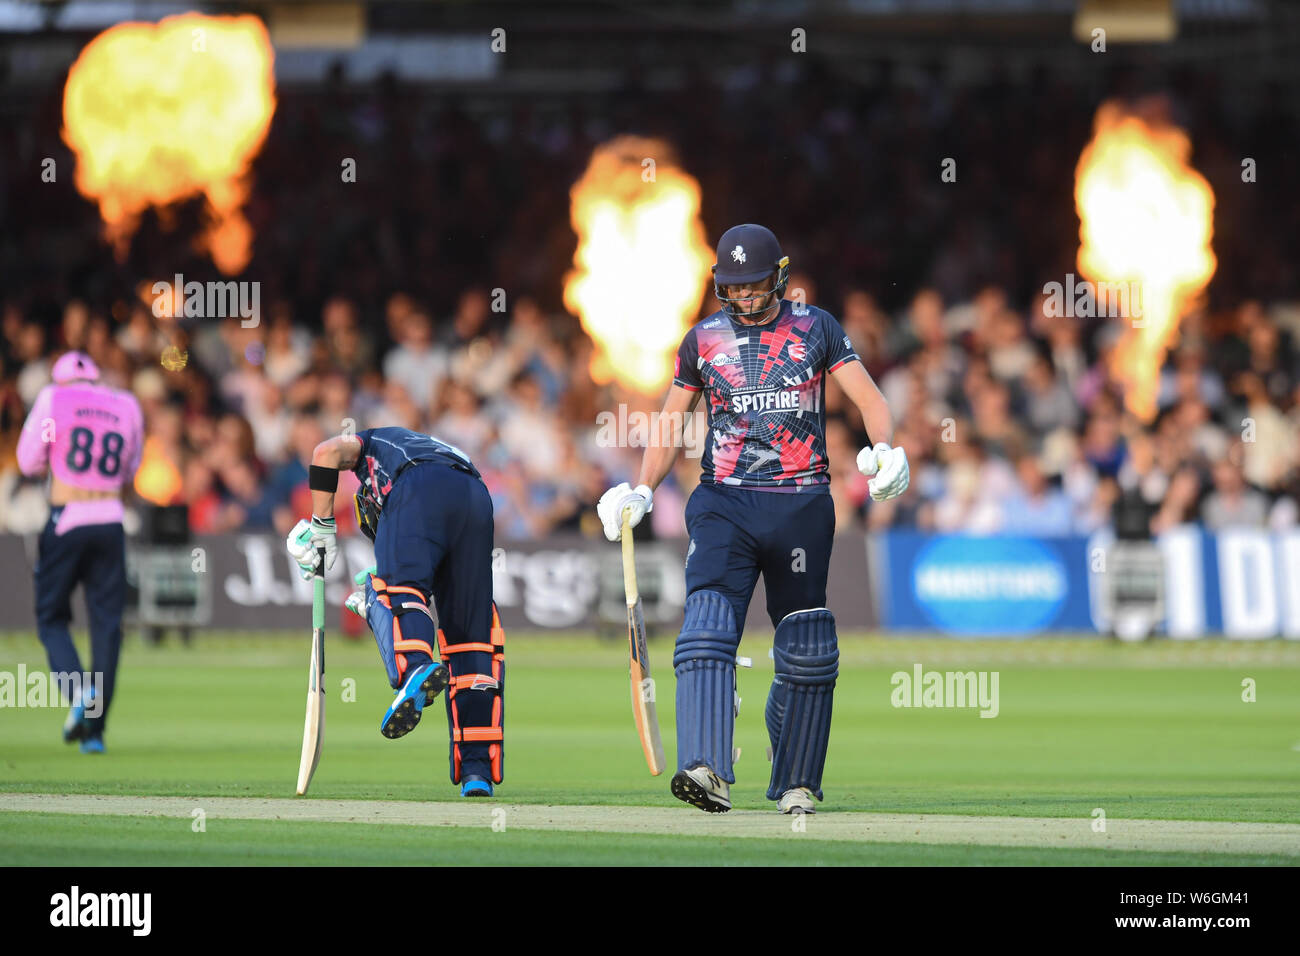 London, UK. 1st Aug, 2019. Alex Blake of Kent Cricket Club (right) in action during todays match during T20 Vitality Blast Fixture between Middesex vs Kent at The Lord Cricket Ground on Thursday, August 01, 2019 in LONDON ENGLAND. Credit: Taka G Wu/Alamy Live News Stock Photo